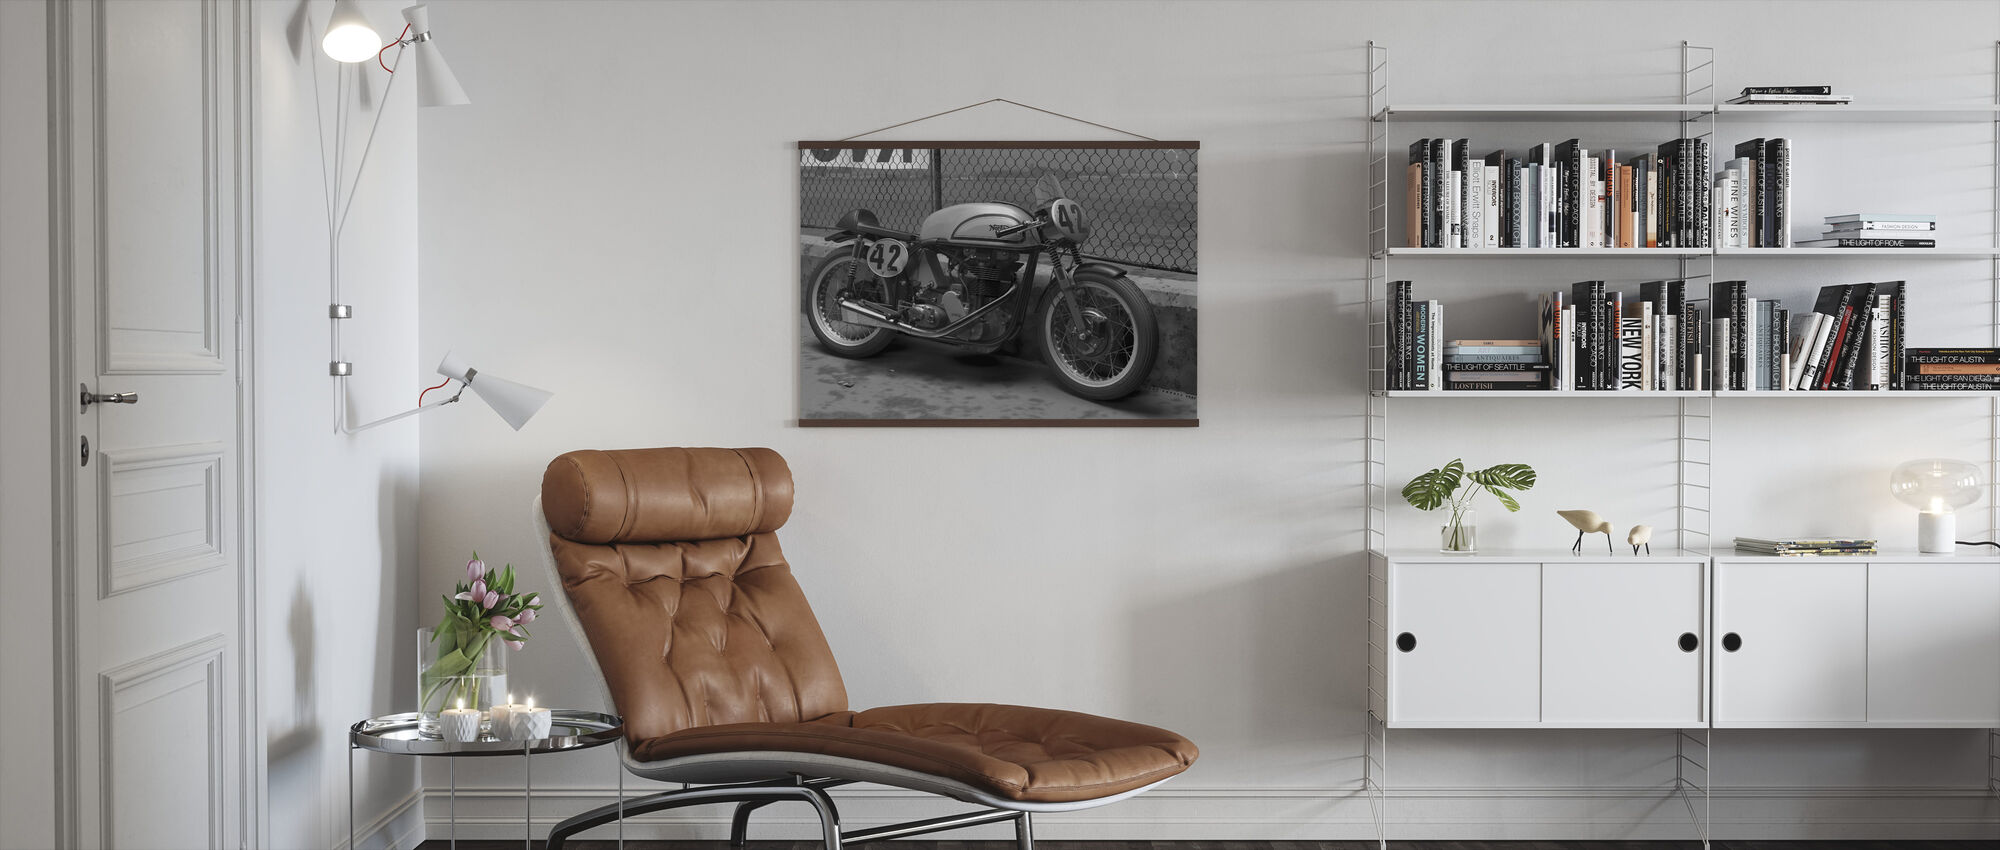 Motorcycle Final BW - Poster - Living Room